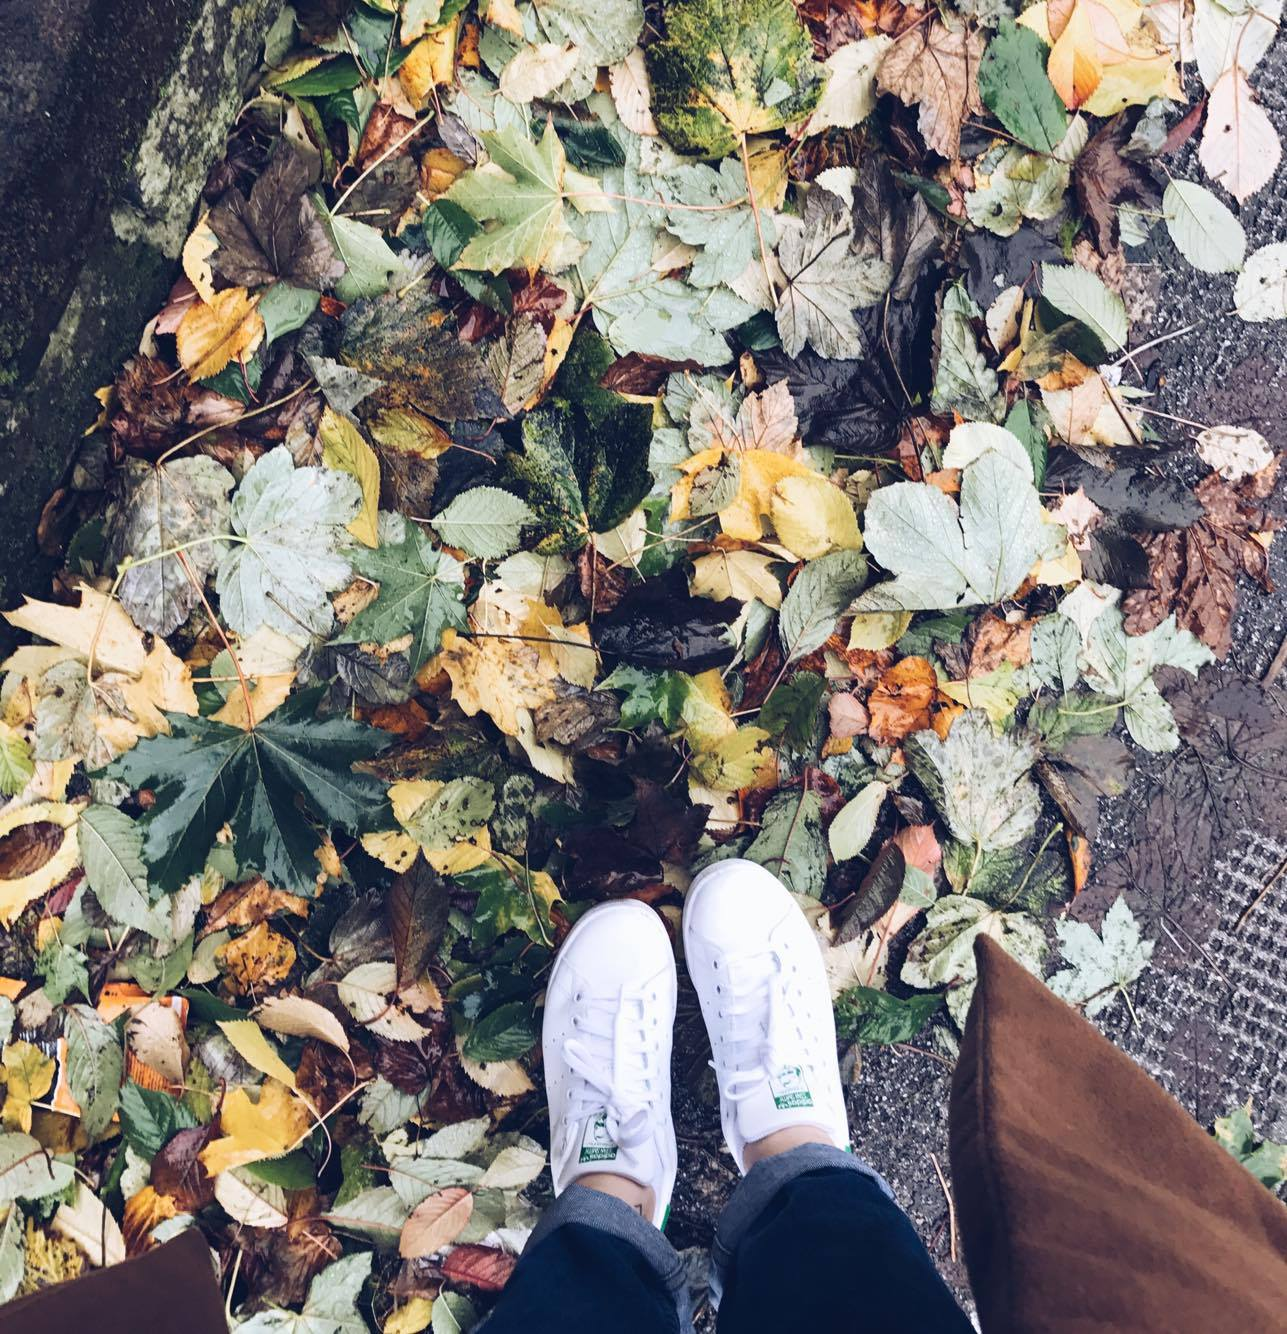 6 Instagram Accounts You Need To Follow For Slowness